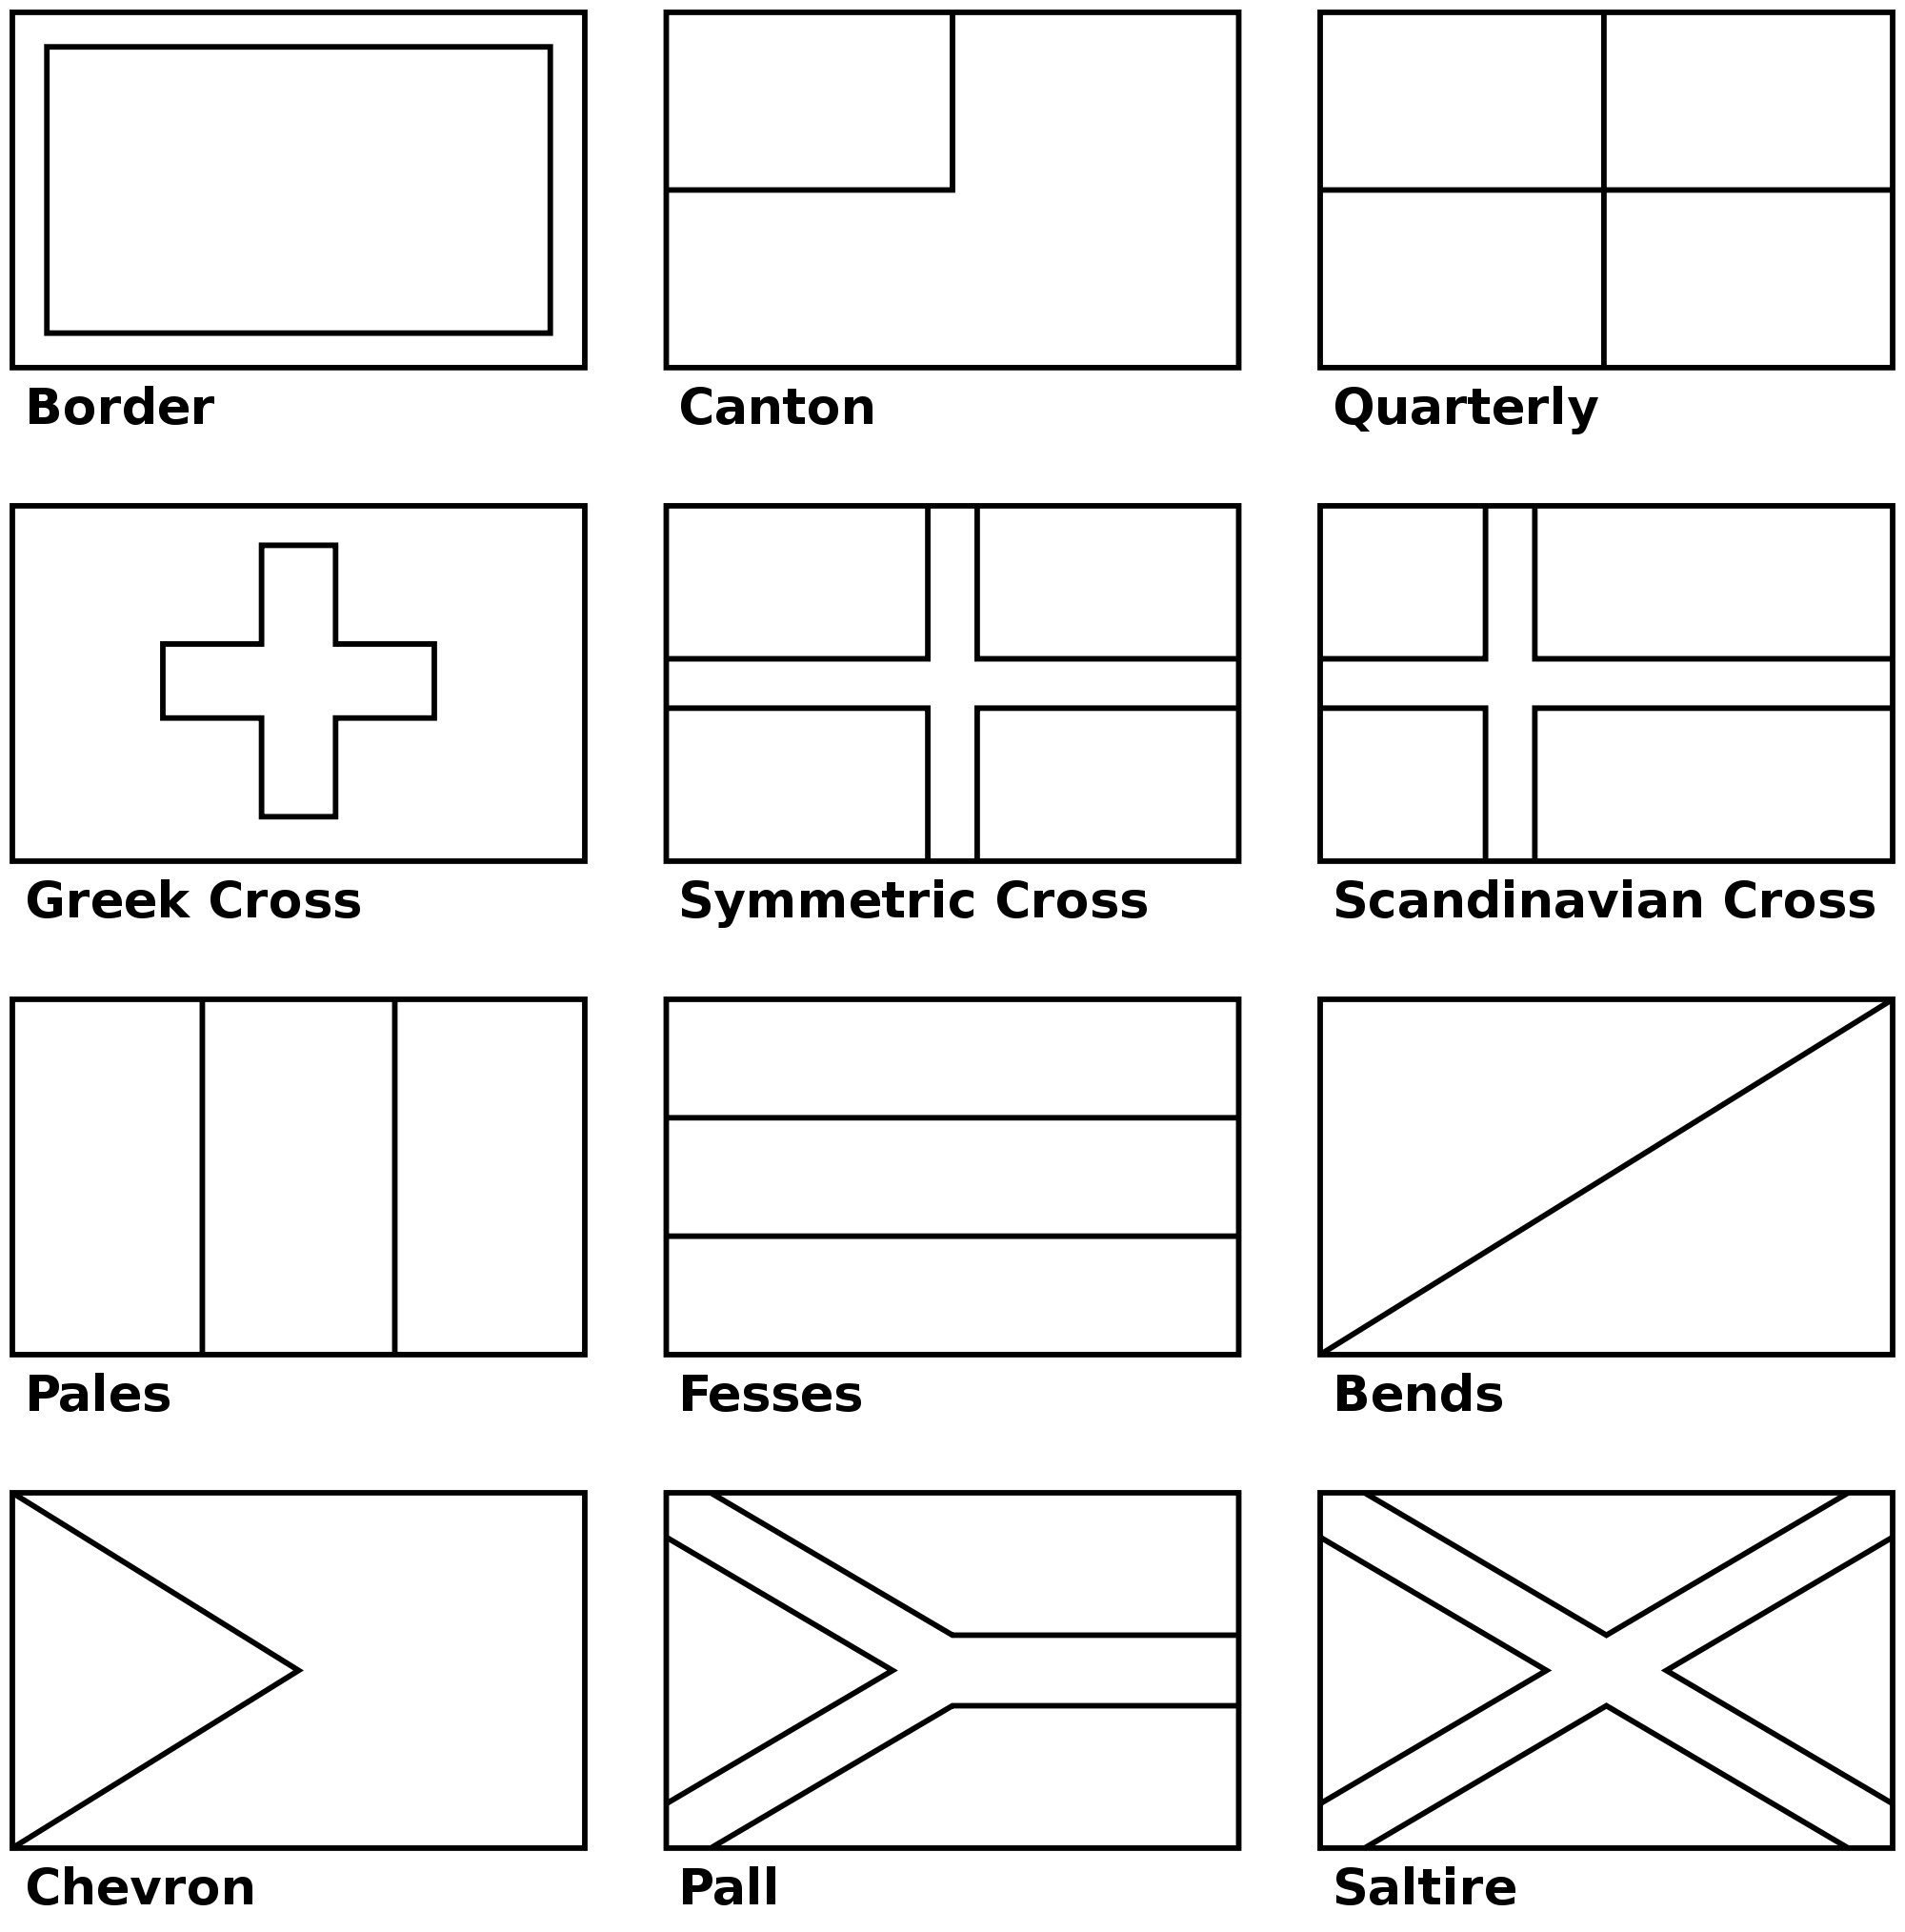 world flags coloring pages world flags coloring sheets 8 flags coloring pages world